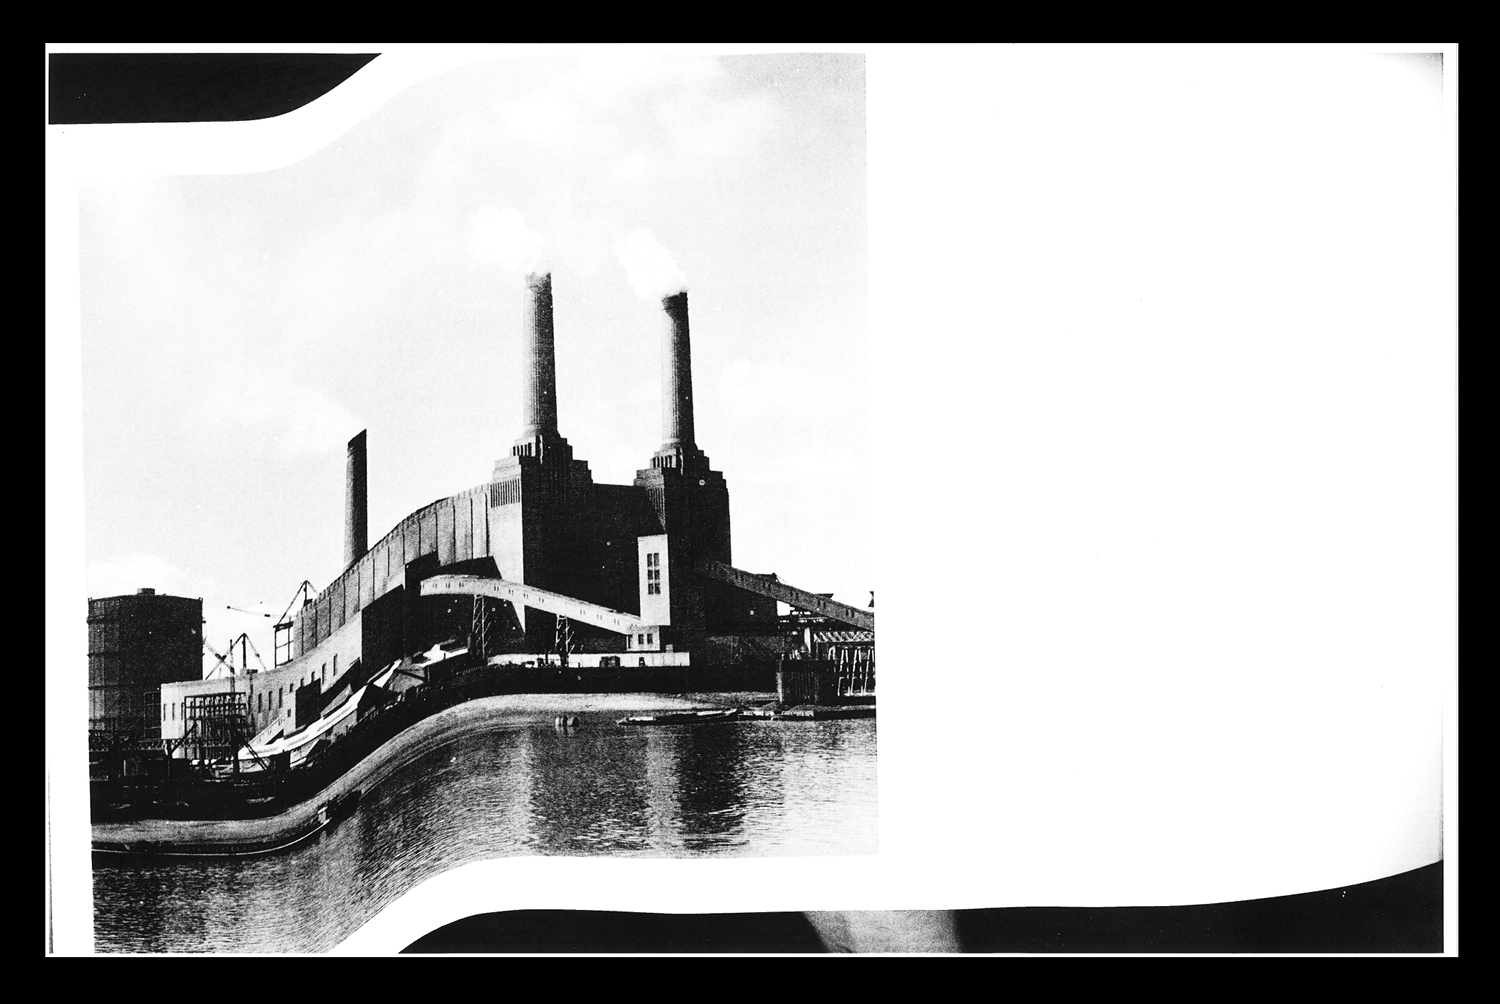 Battersea3-web.jpg